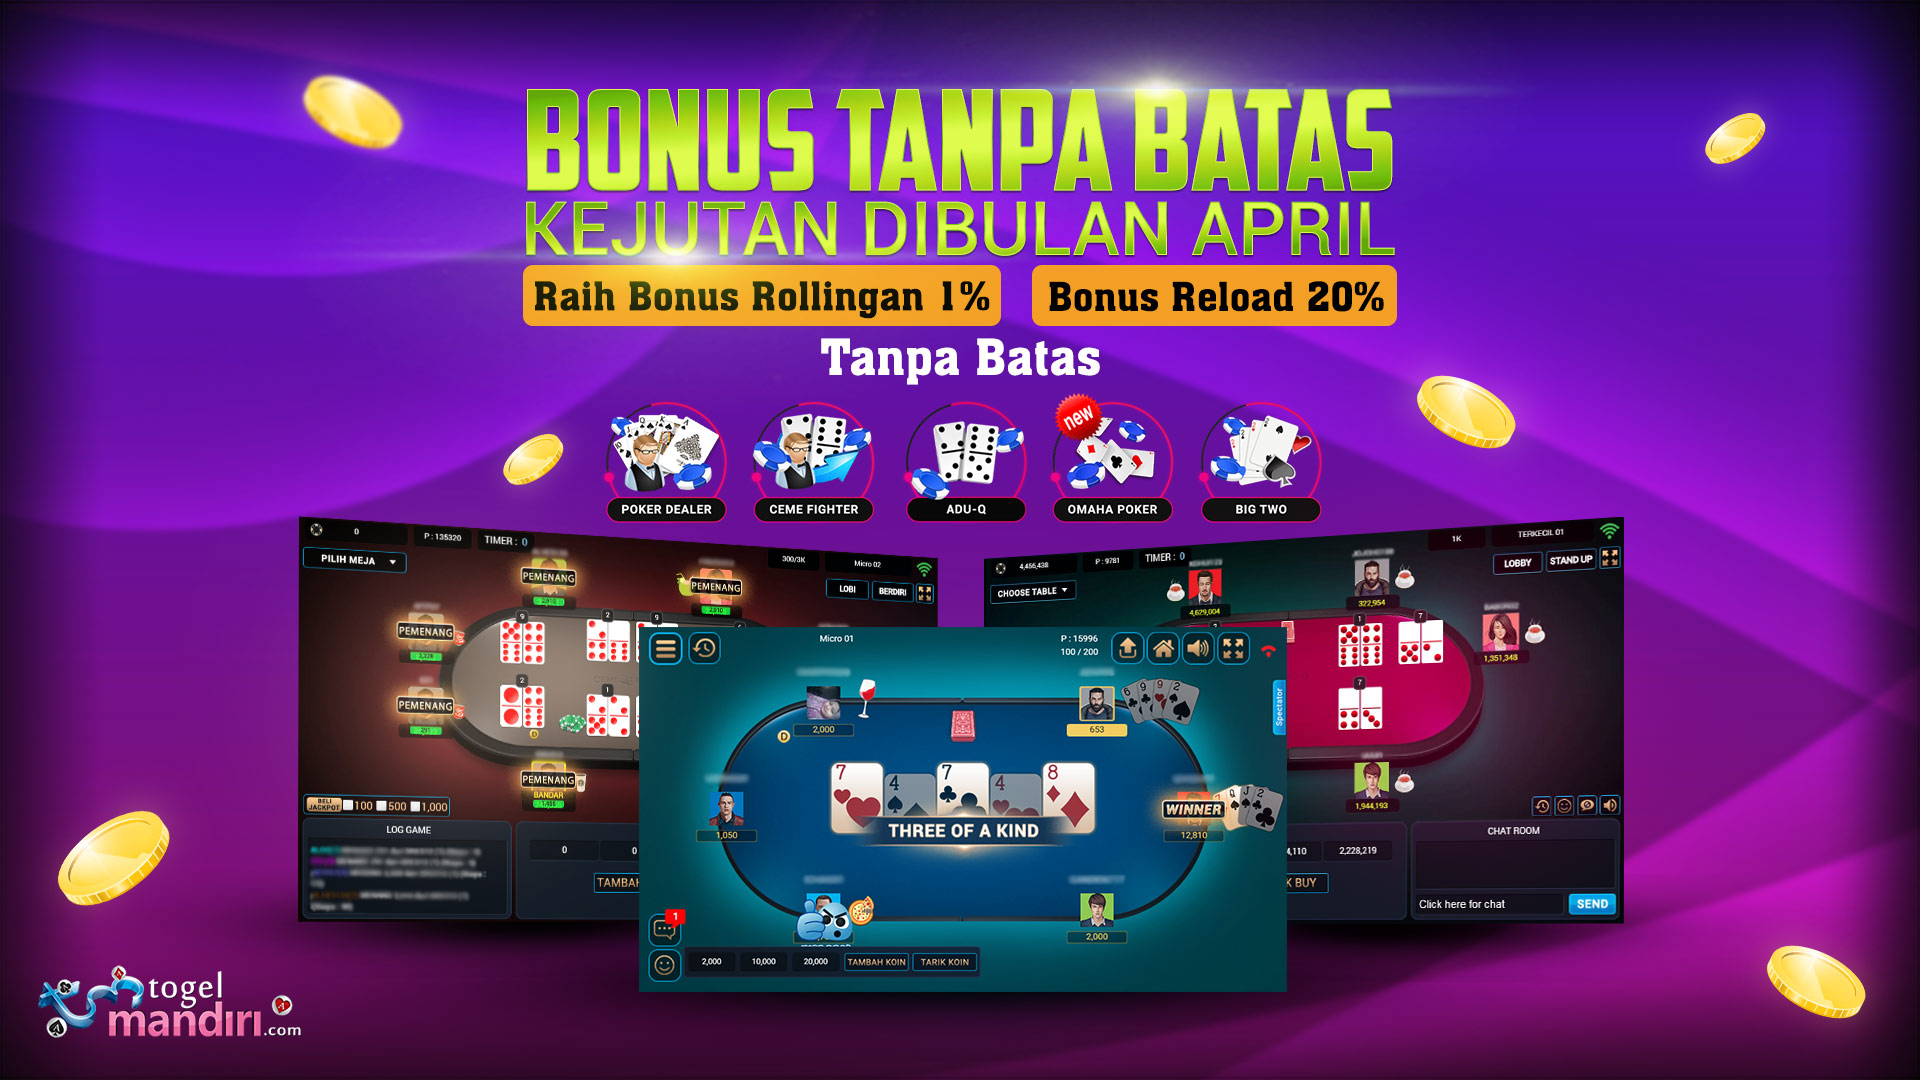 BONUS TANPA BATAS | KEJUTAN DIBULAN APRIL